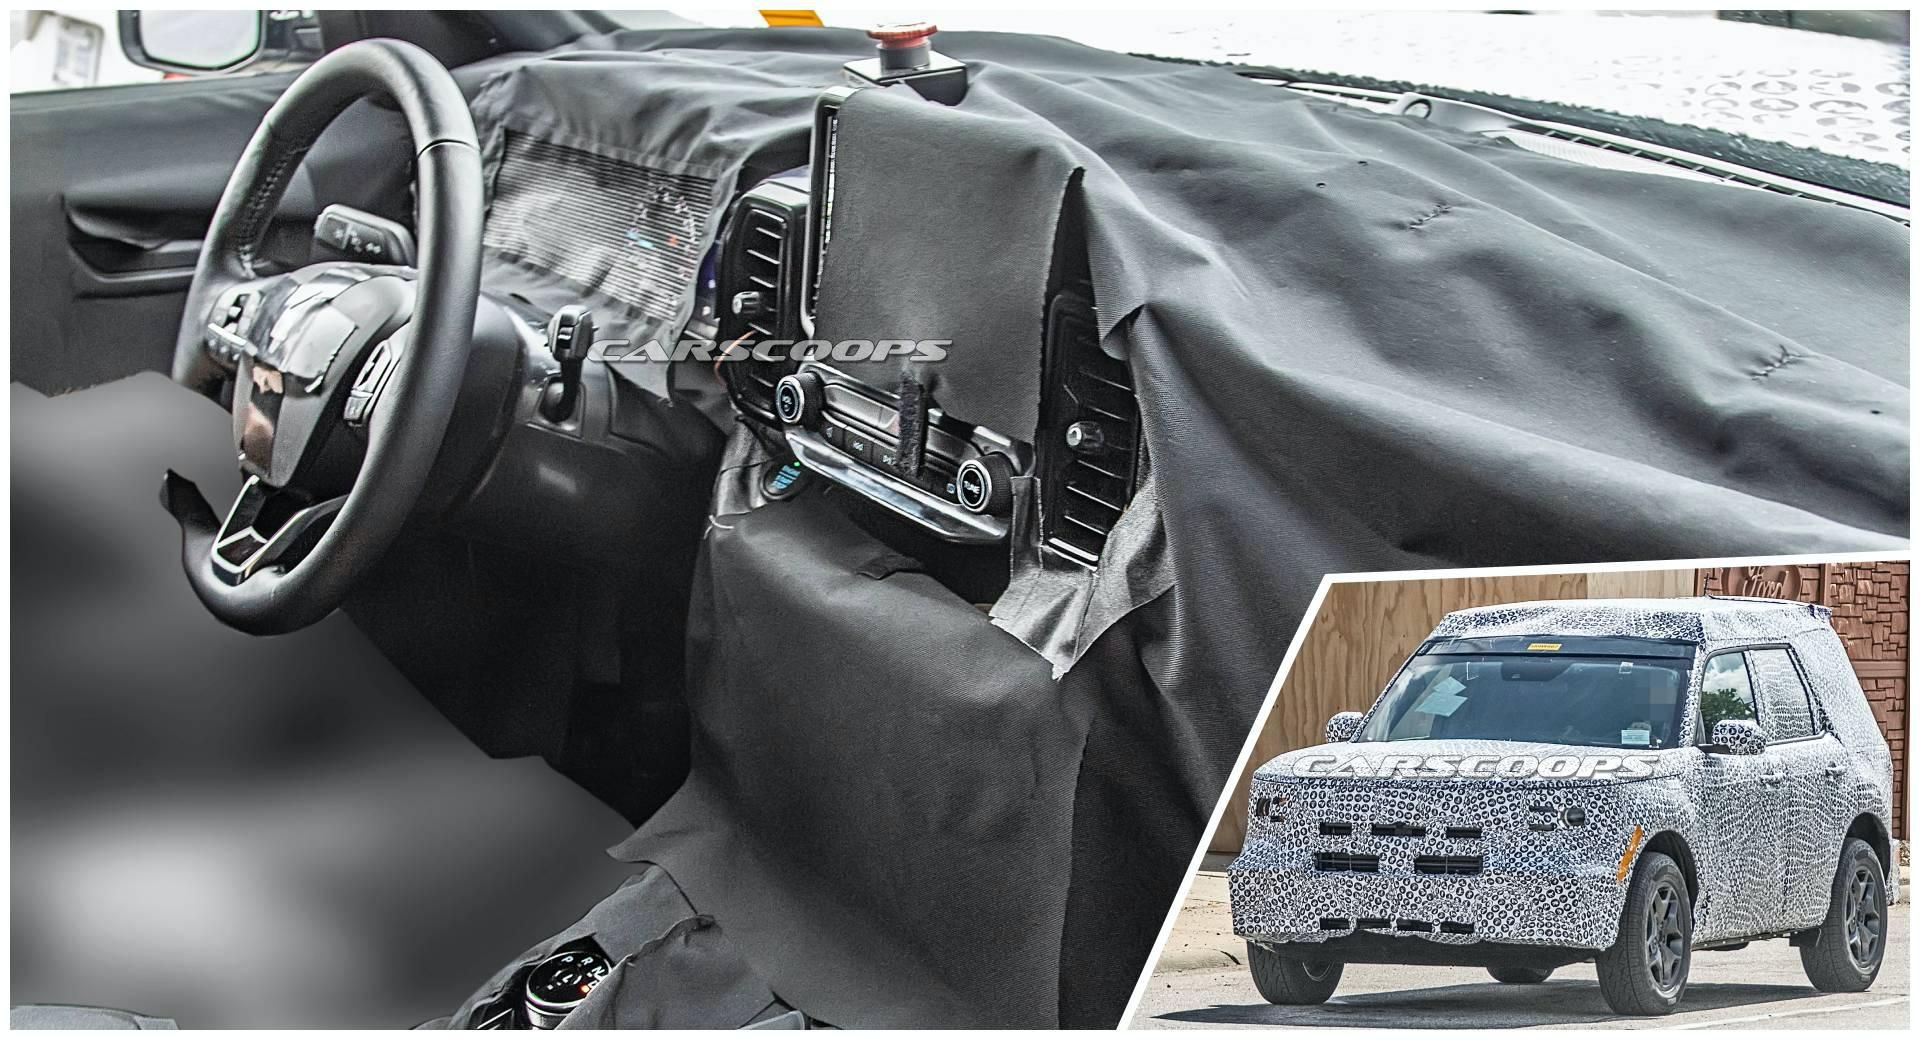 2021 Ford Baby Bronco Prototype Offers Best Look Yet At Escape